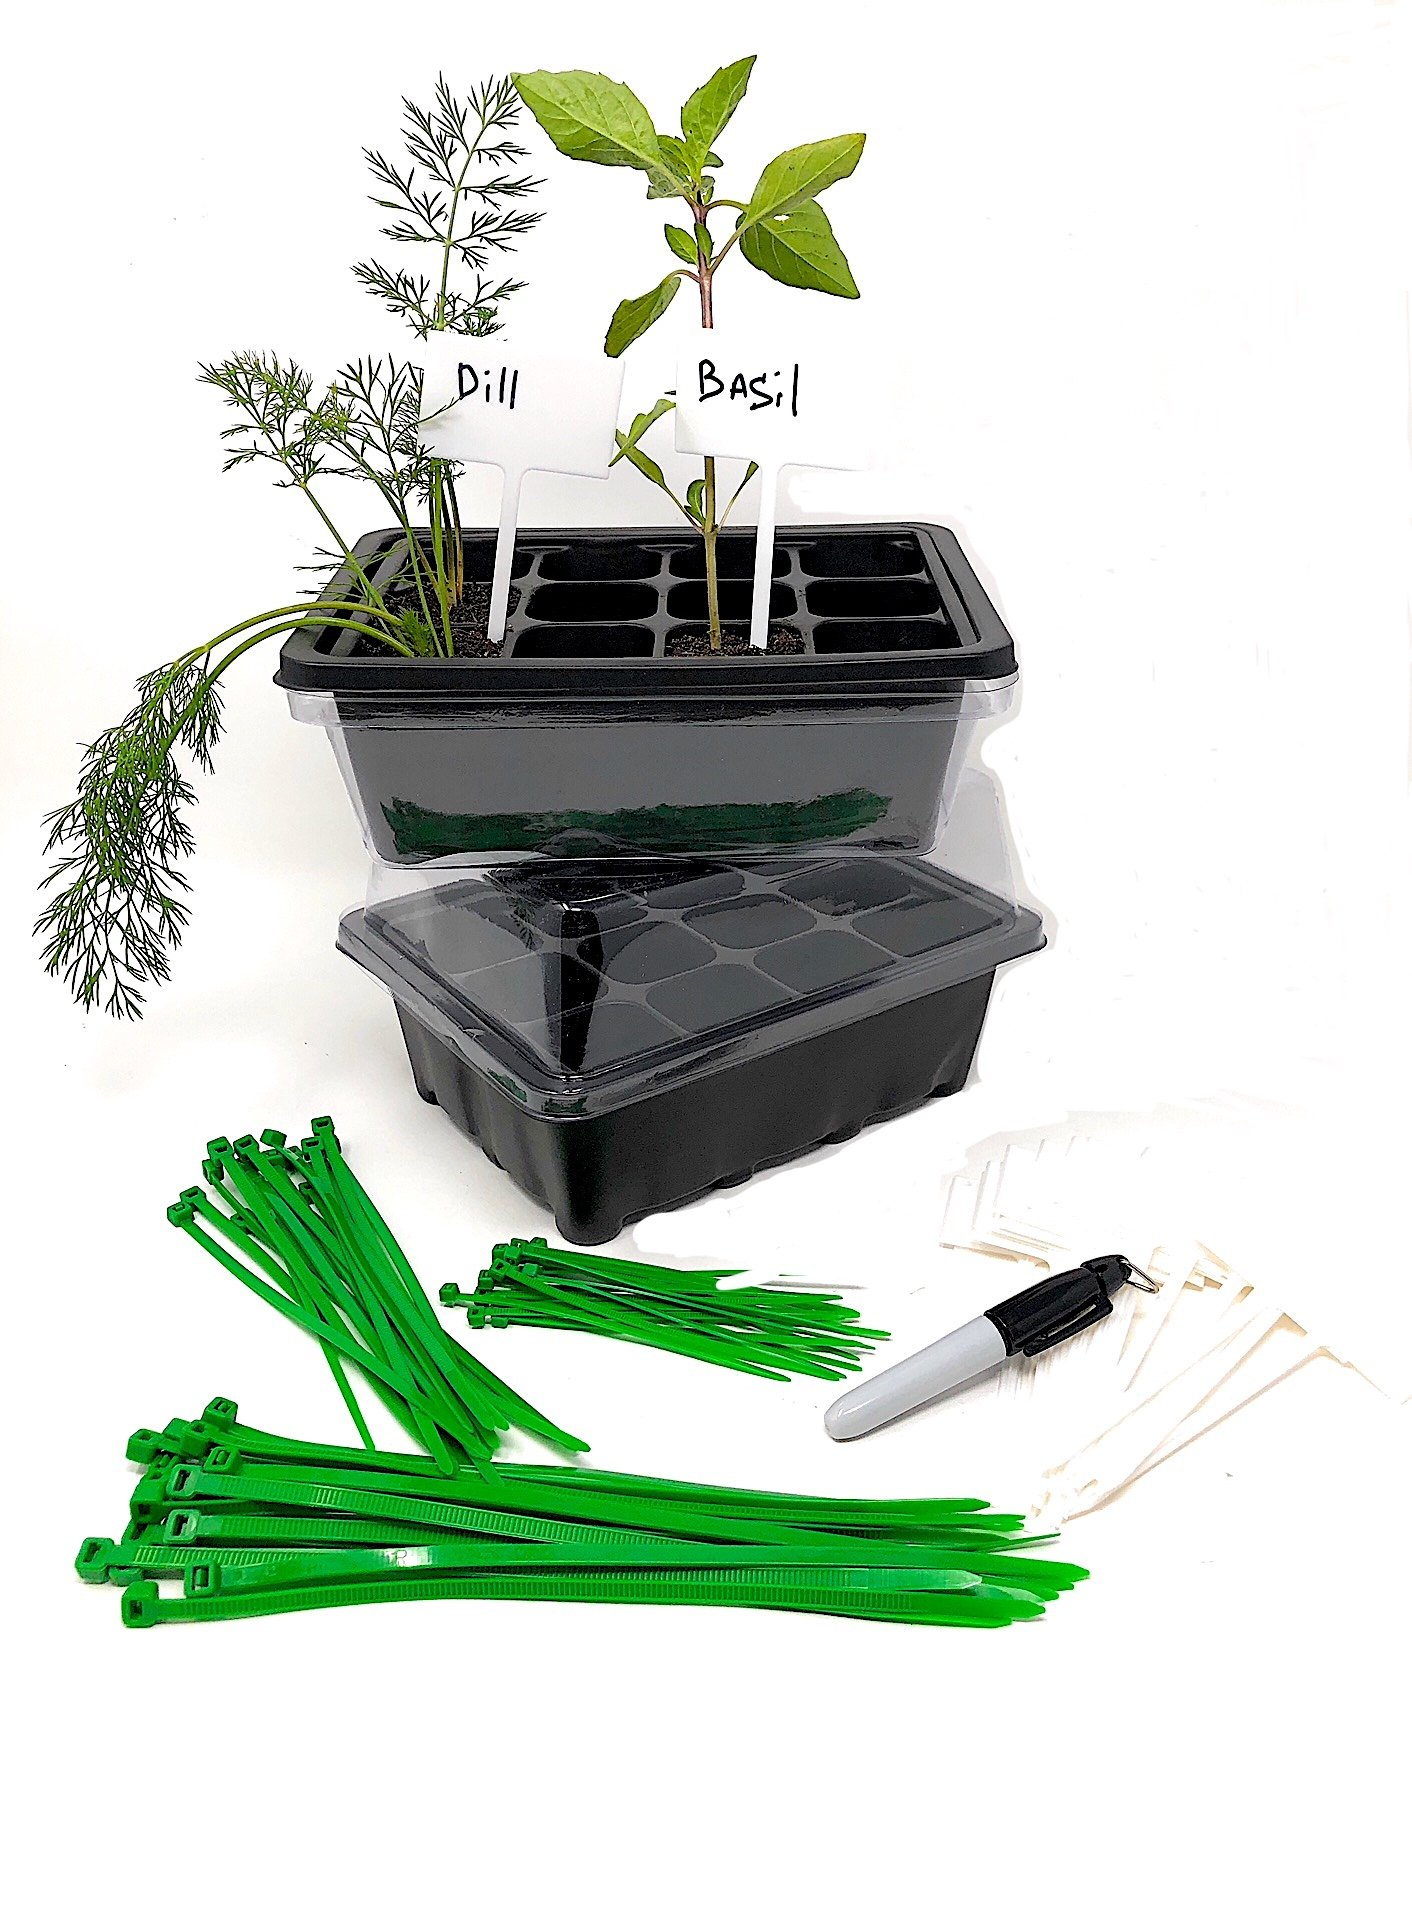 Set of Tray Pots Seed Greenhouse Grow Kits (24 Cells) + 50 Plant Cable Ties + 20 Plant Labels With Marker (Bundle of 5 Items)